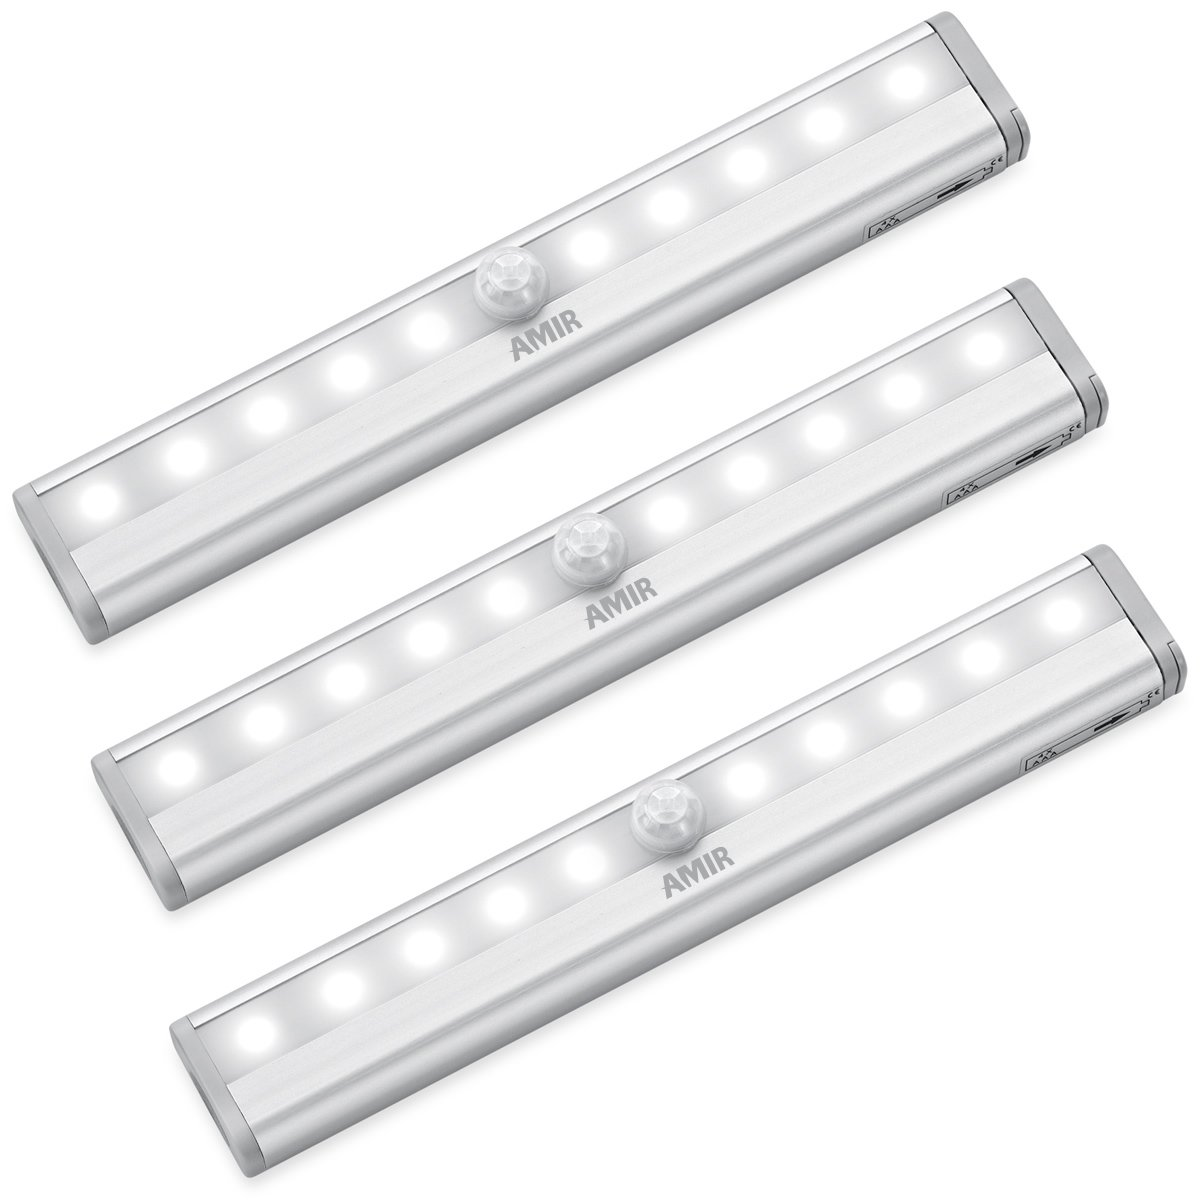 NEW VERSION AMIR Motion Sensor Lights, 10-LED DIY Stick-on Anywhere Battery Operated Portable Wireless Cabinet Night/Stairs/ Step/Closet Light Bar with Magnetic Strip (White, 3 Pack)